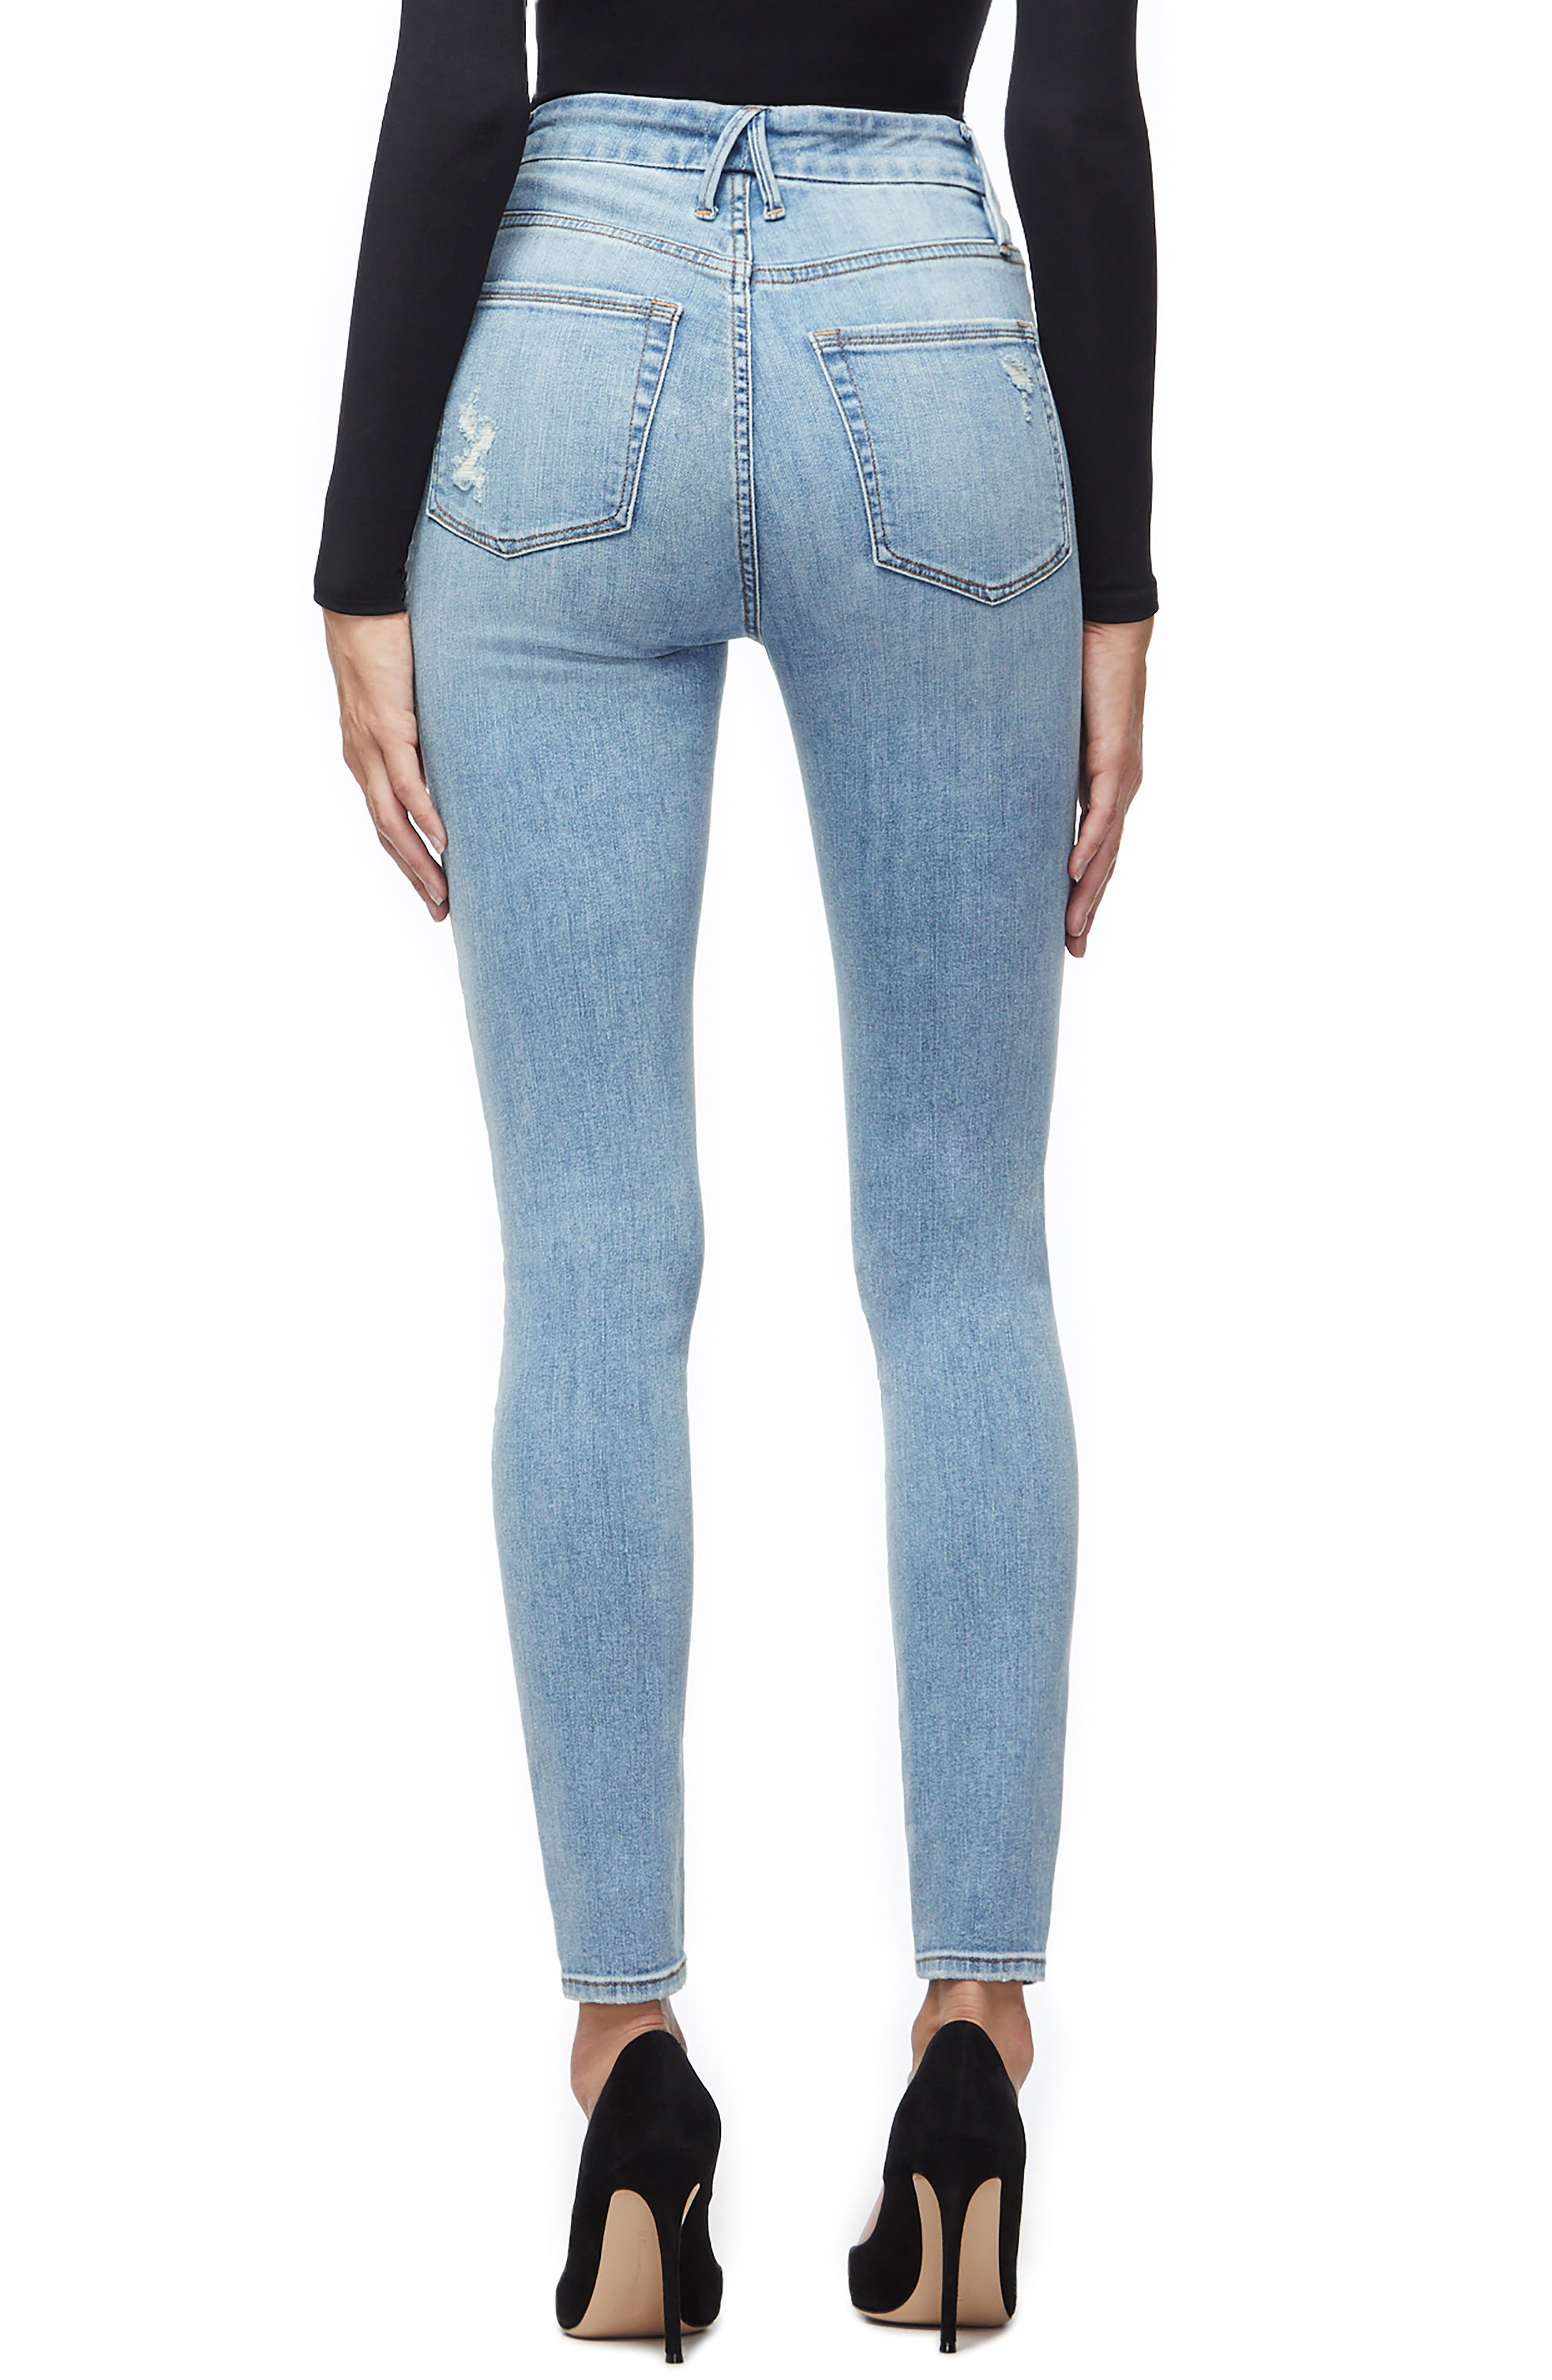 GOOD AMERICAN, Good Legs Ripped High Waist Skinny Jeans, Alternate thumbnail 4, color, BLUE221